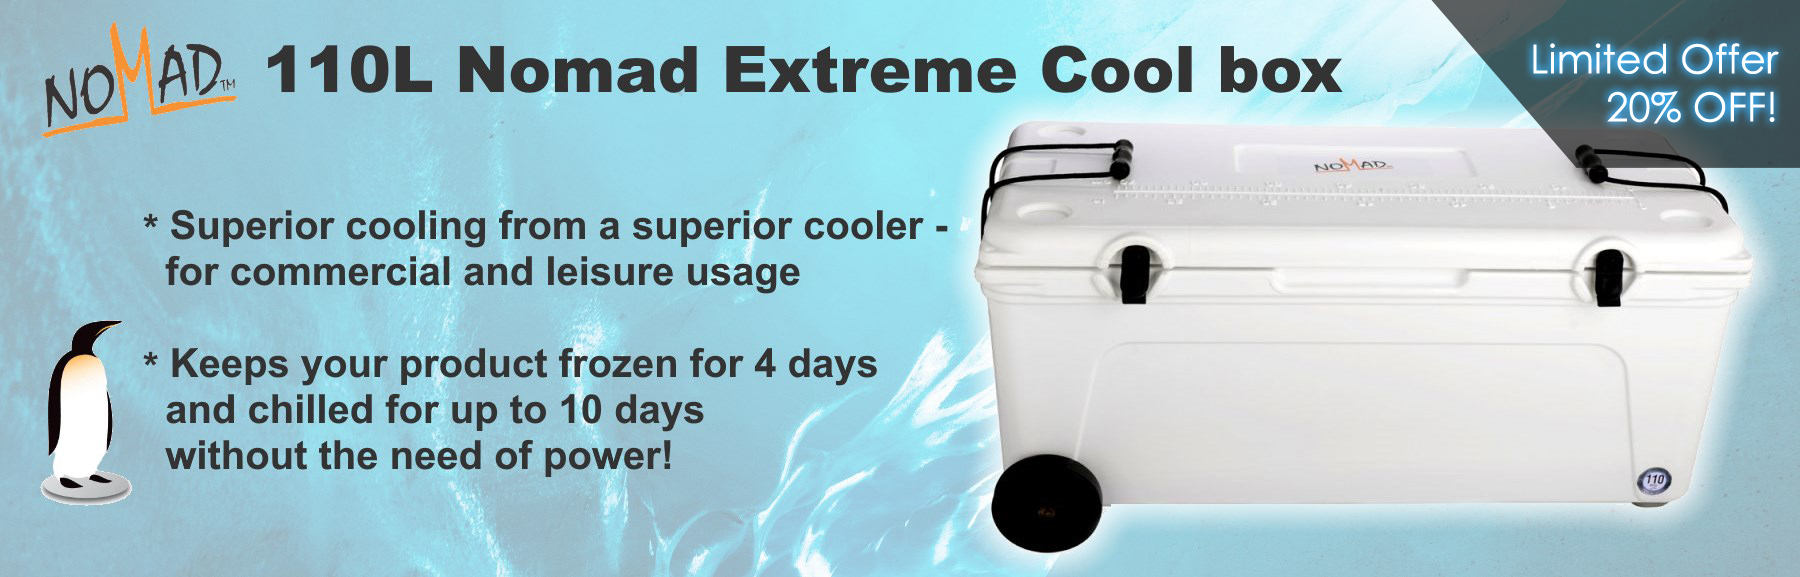 110L Nomad Extreme Cool Box